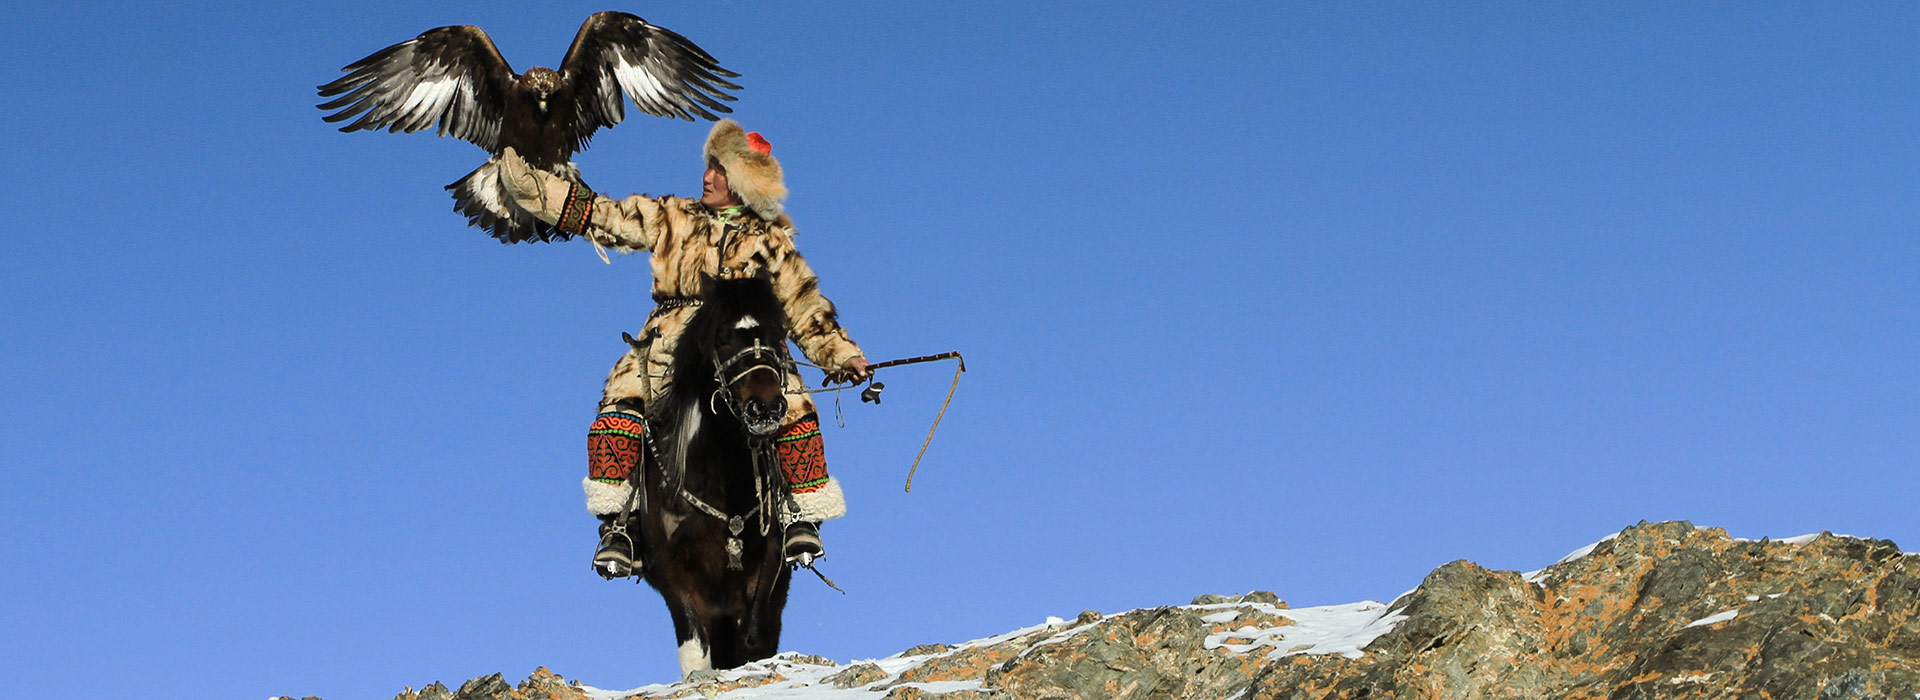 ready-to-hunt-eagle-hunter